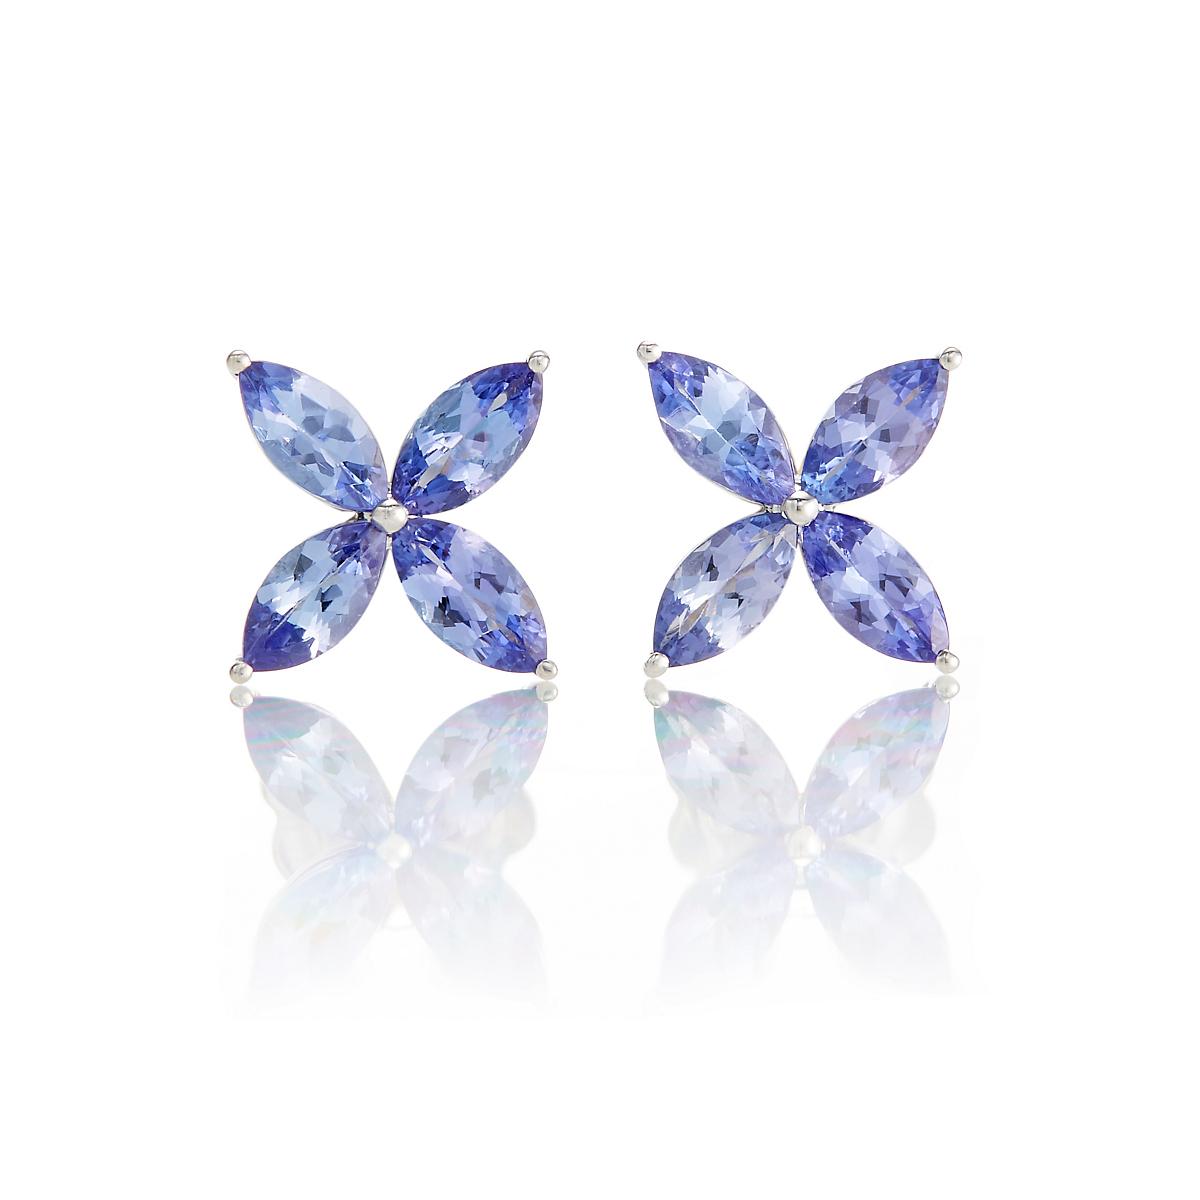 Gump's Tanzanite Pinwheel Stud Earrings